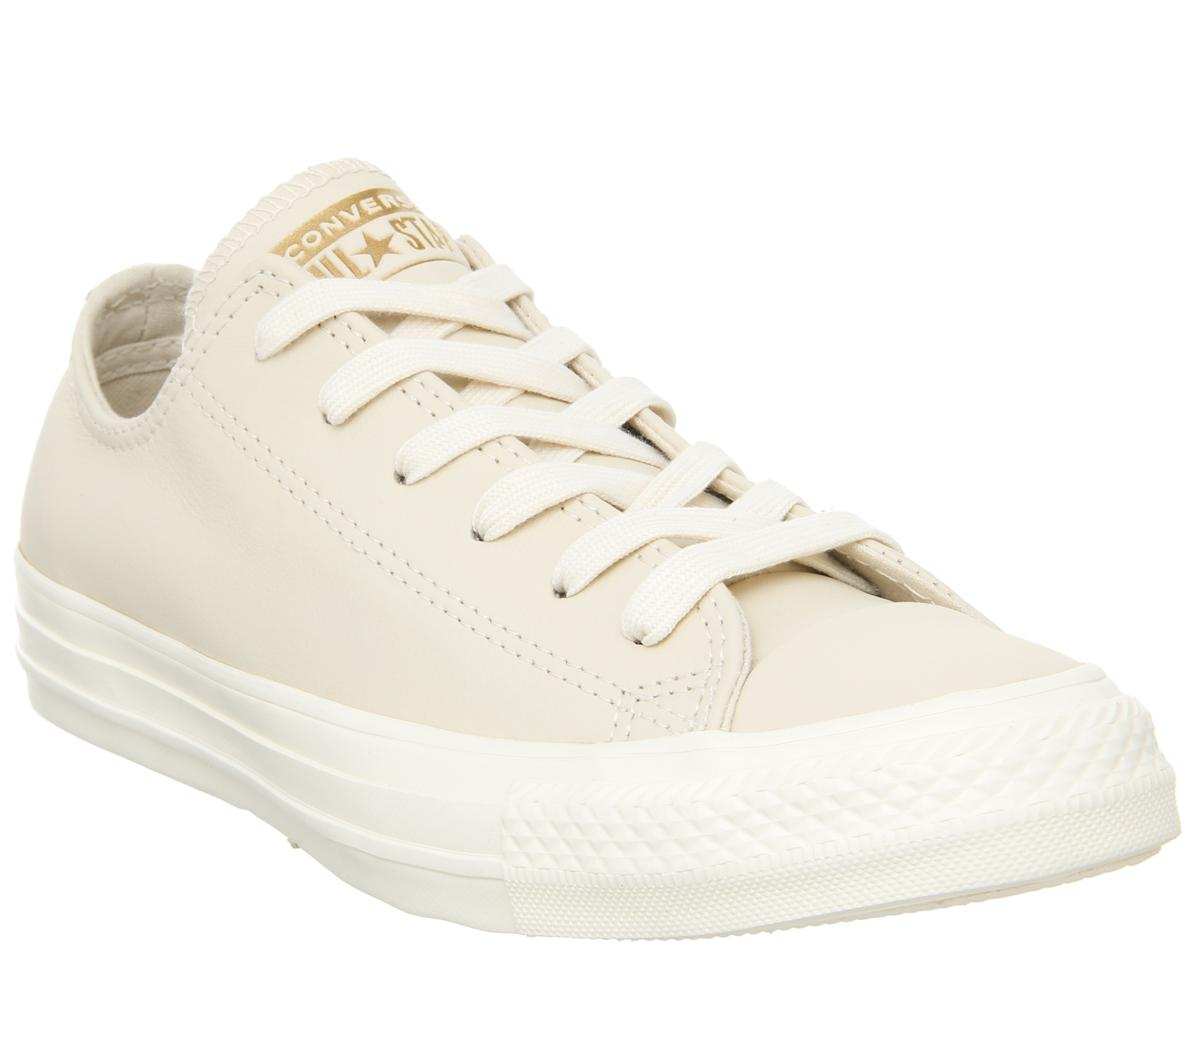 Converse Allstar Low Leather Natural